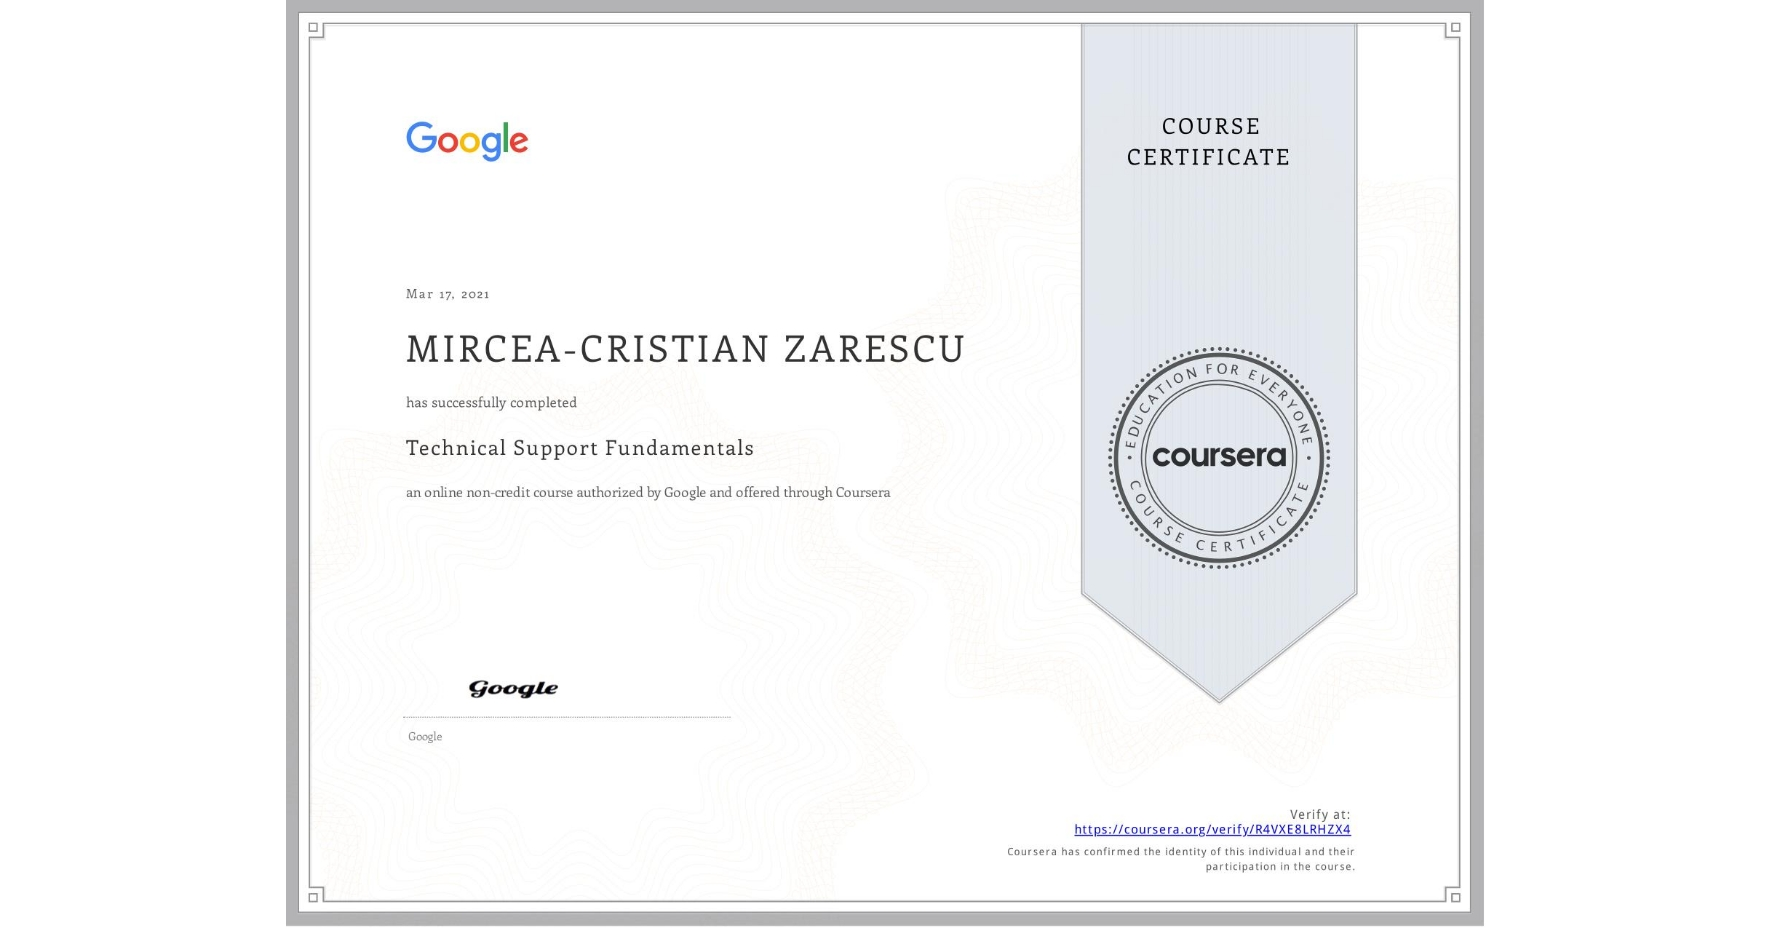 View certificate for MIRCEA-CRISTIAN ZARESCU, Technical Support Fundamentals, an online non-credit course authorized by Google and offered through Coursera